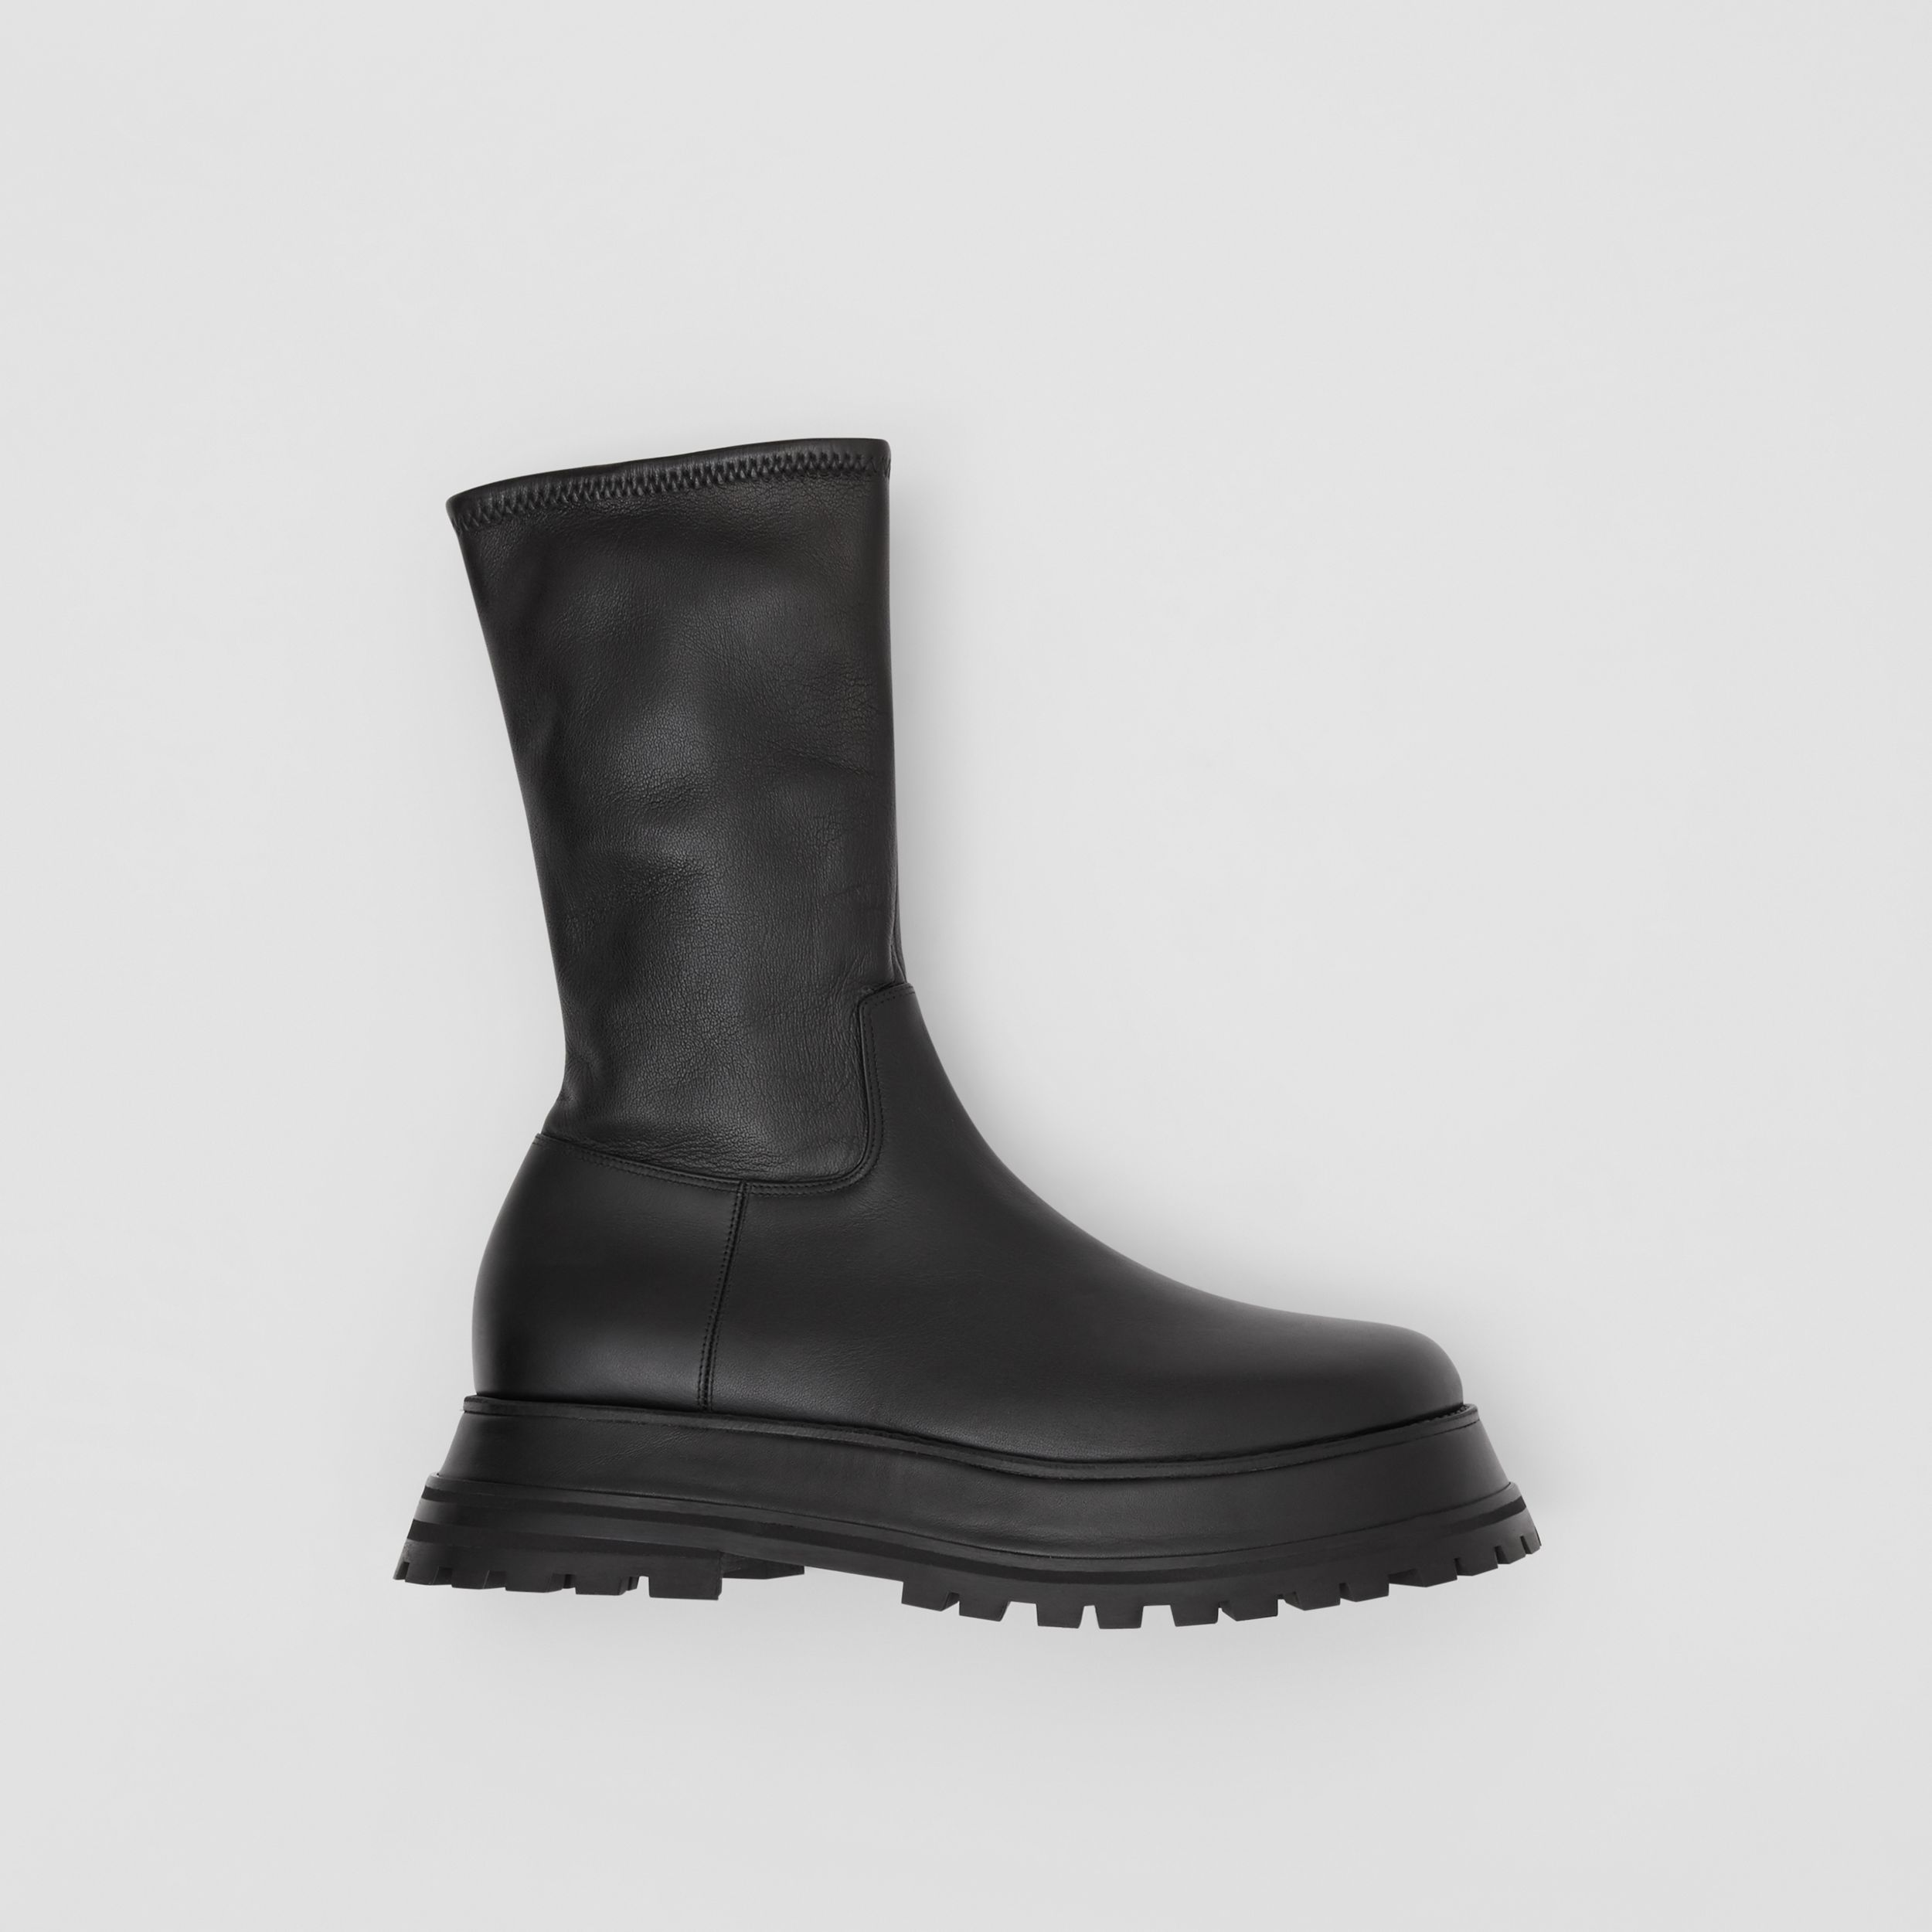 Leather and Lambskin Boots in Black - Women | Burberry - 1